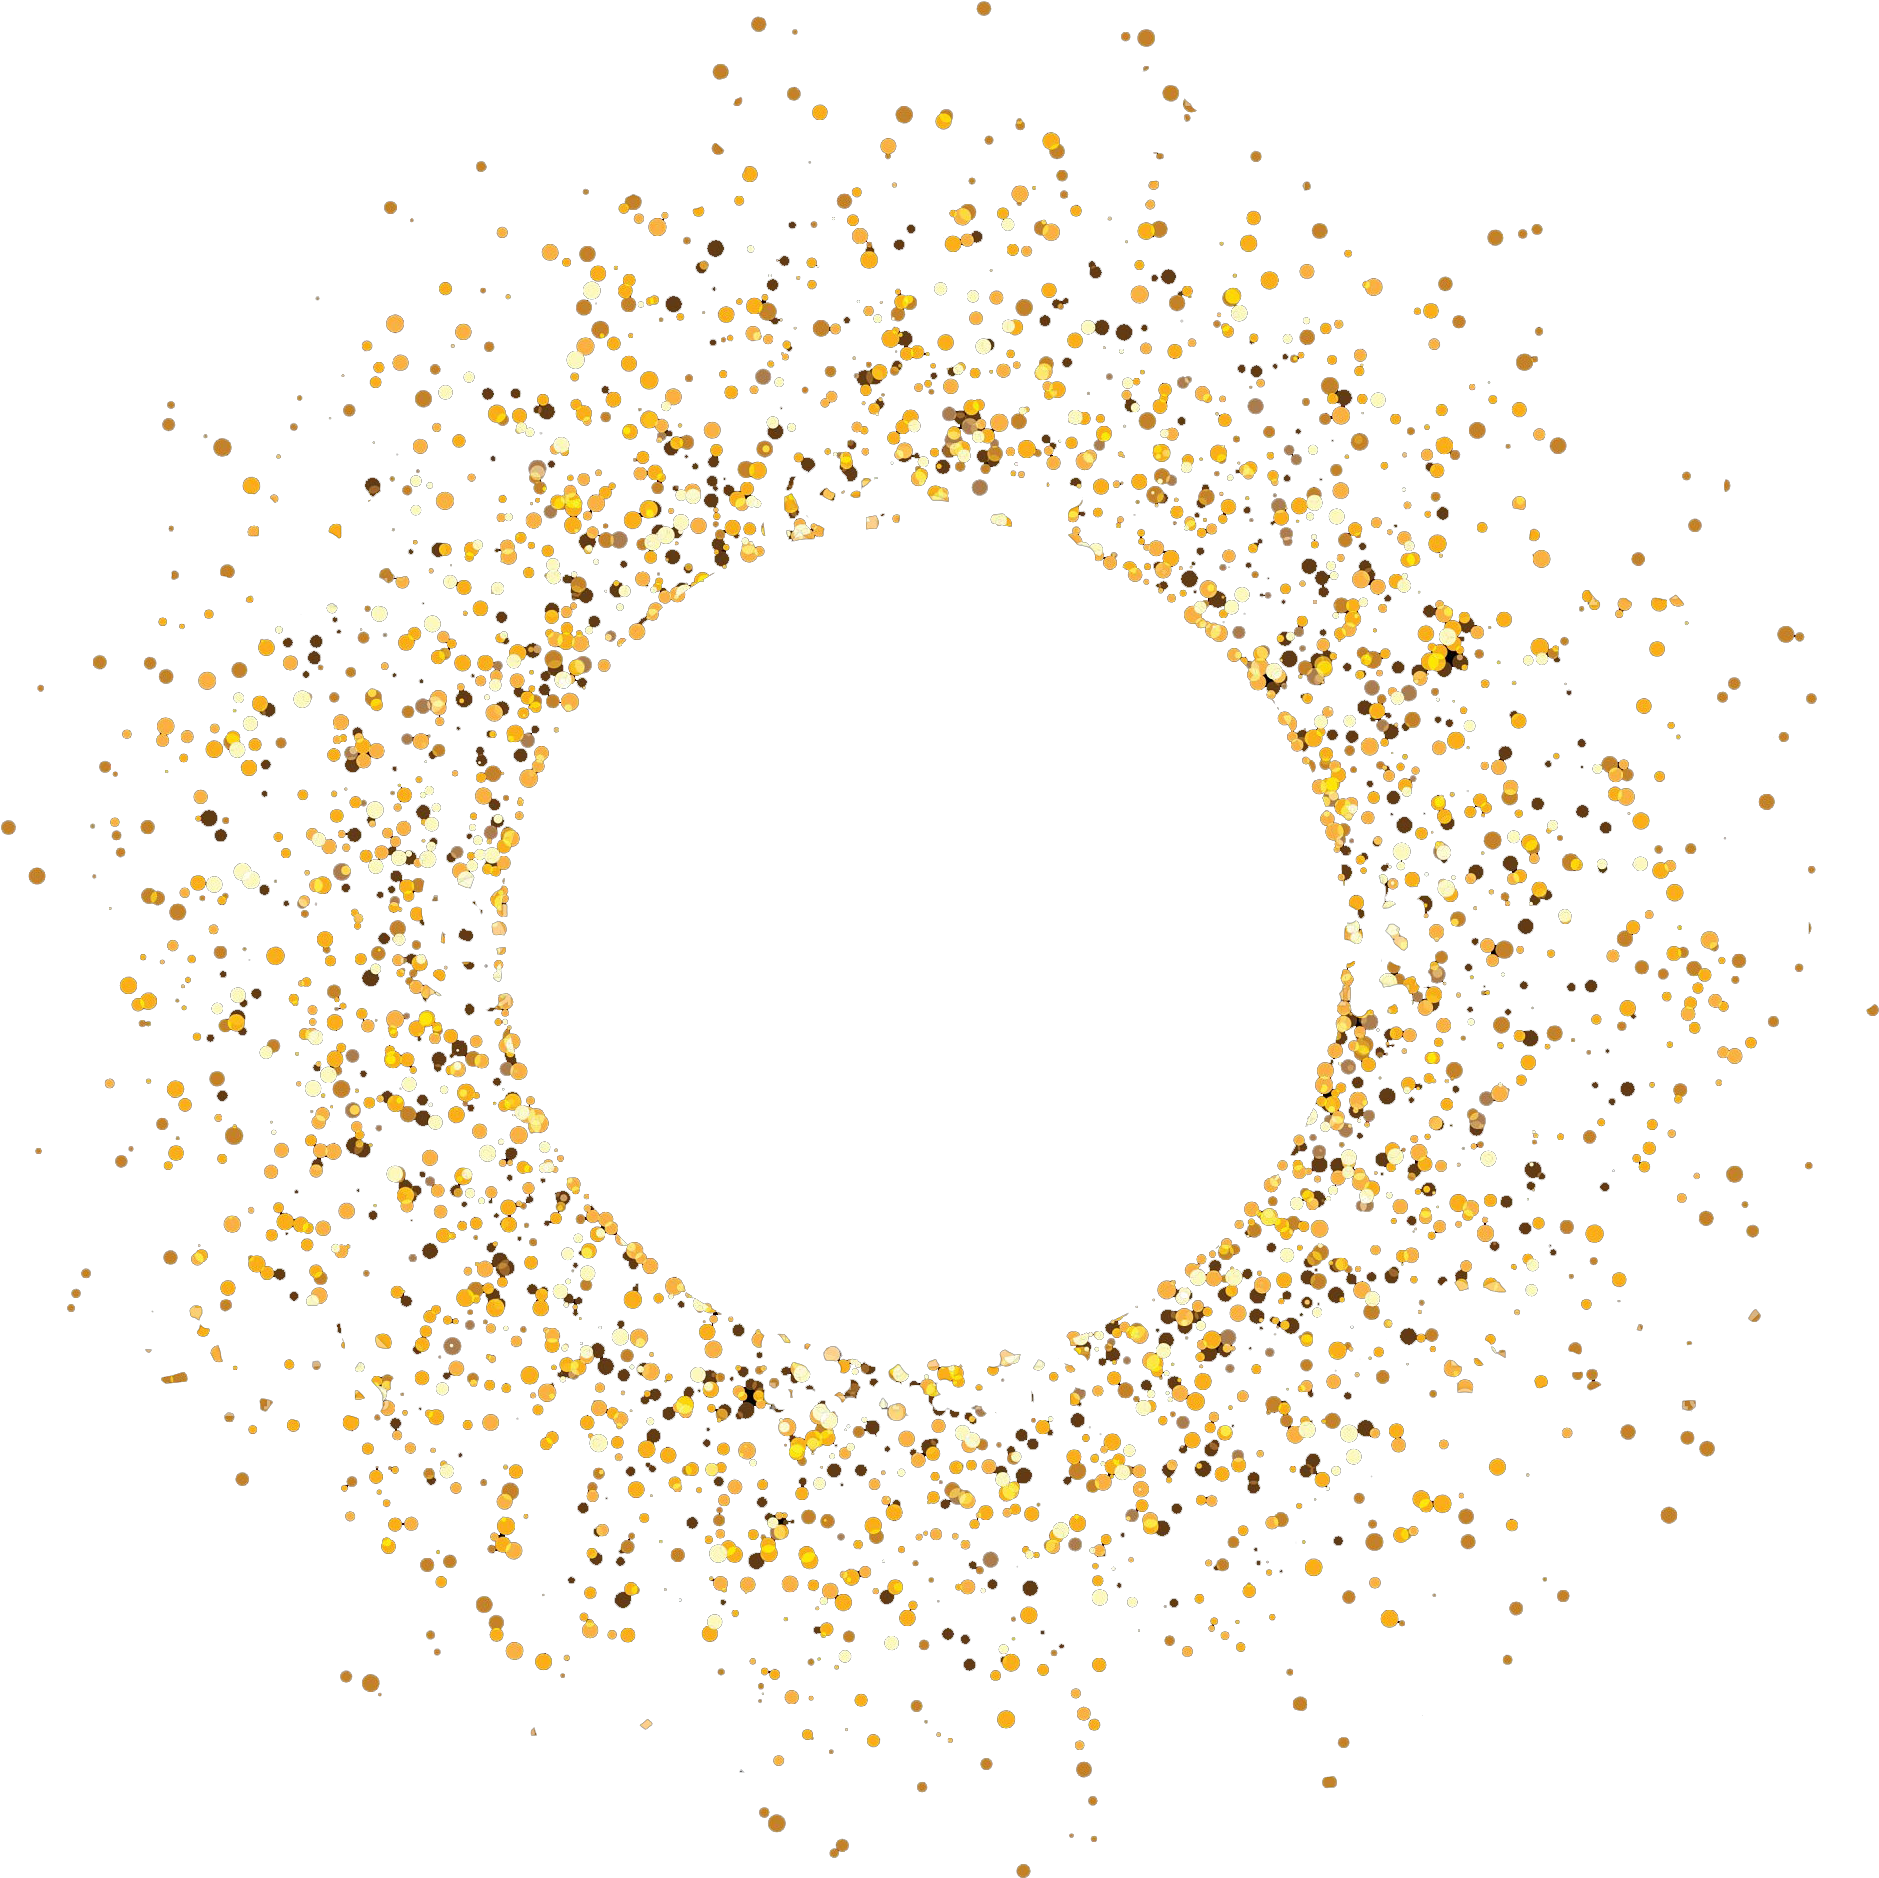 Free Vector Gold Glitter Frame Sparkles On White Background Http Www Cgvector Com Free Vector Gold Glitter Frame Sparkles Background Gold Glitter Background